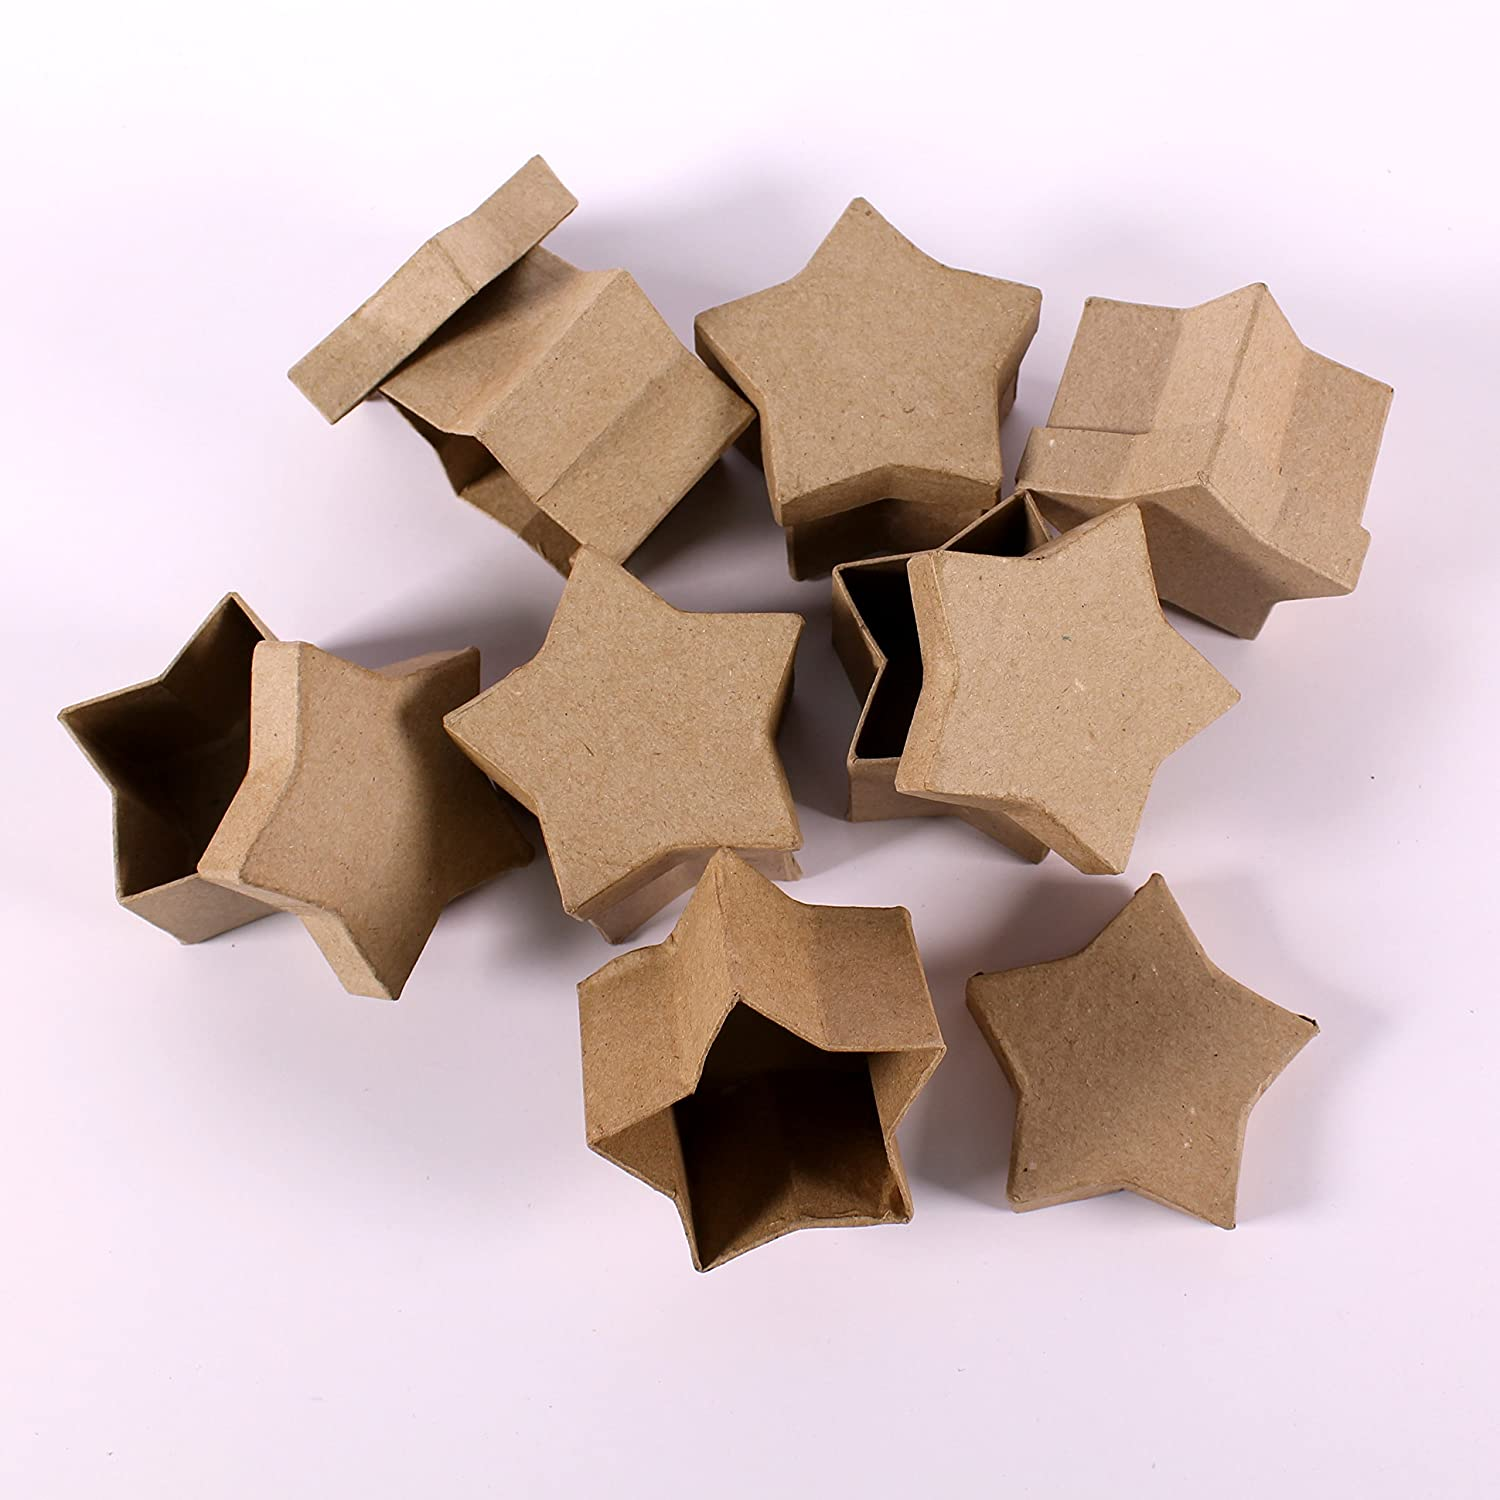 Mini Brown Star Shaped Papier Mache Paper Gift Box Easy Decorate Present Boxes Pack of 12 by BCreative ® GC621-12L